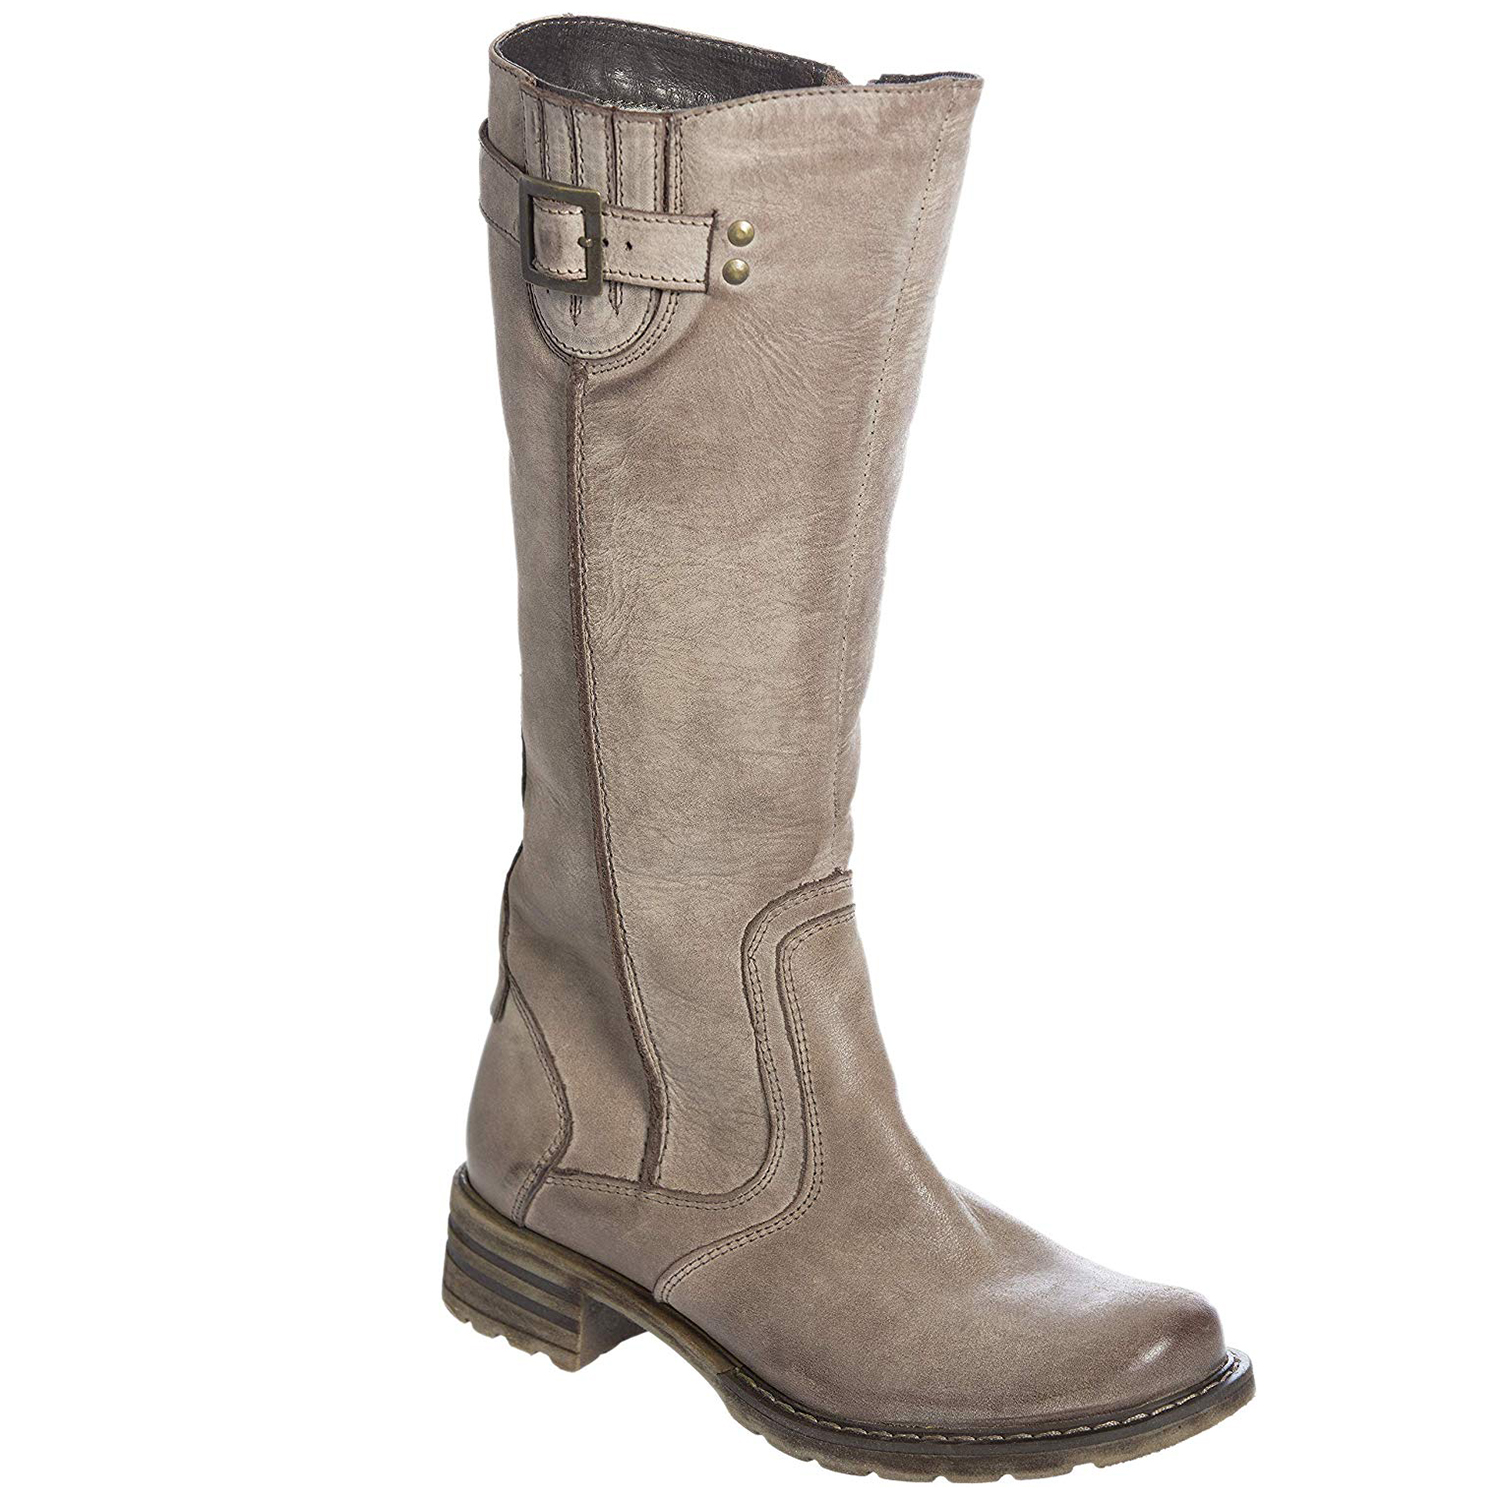 Warm Clothes for Women: Overland Sheepskin Co-Fleece Lined Leather Boots